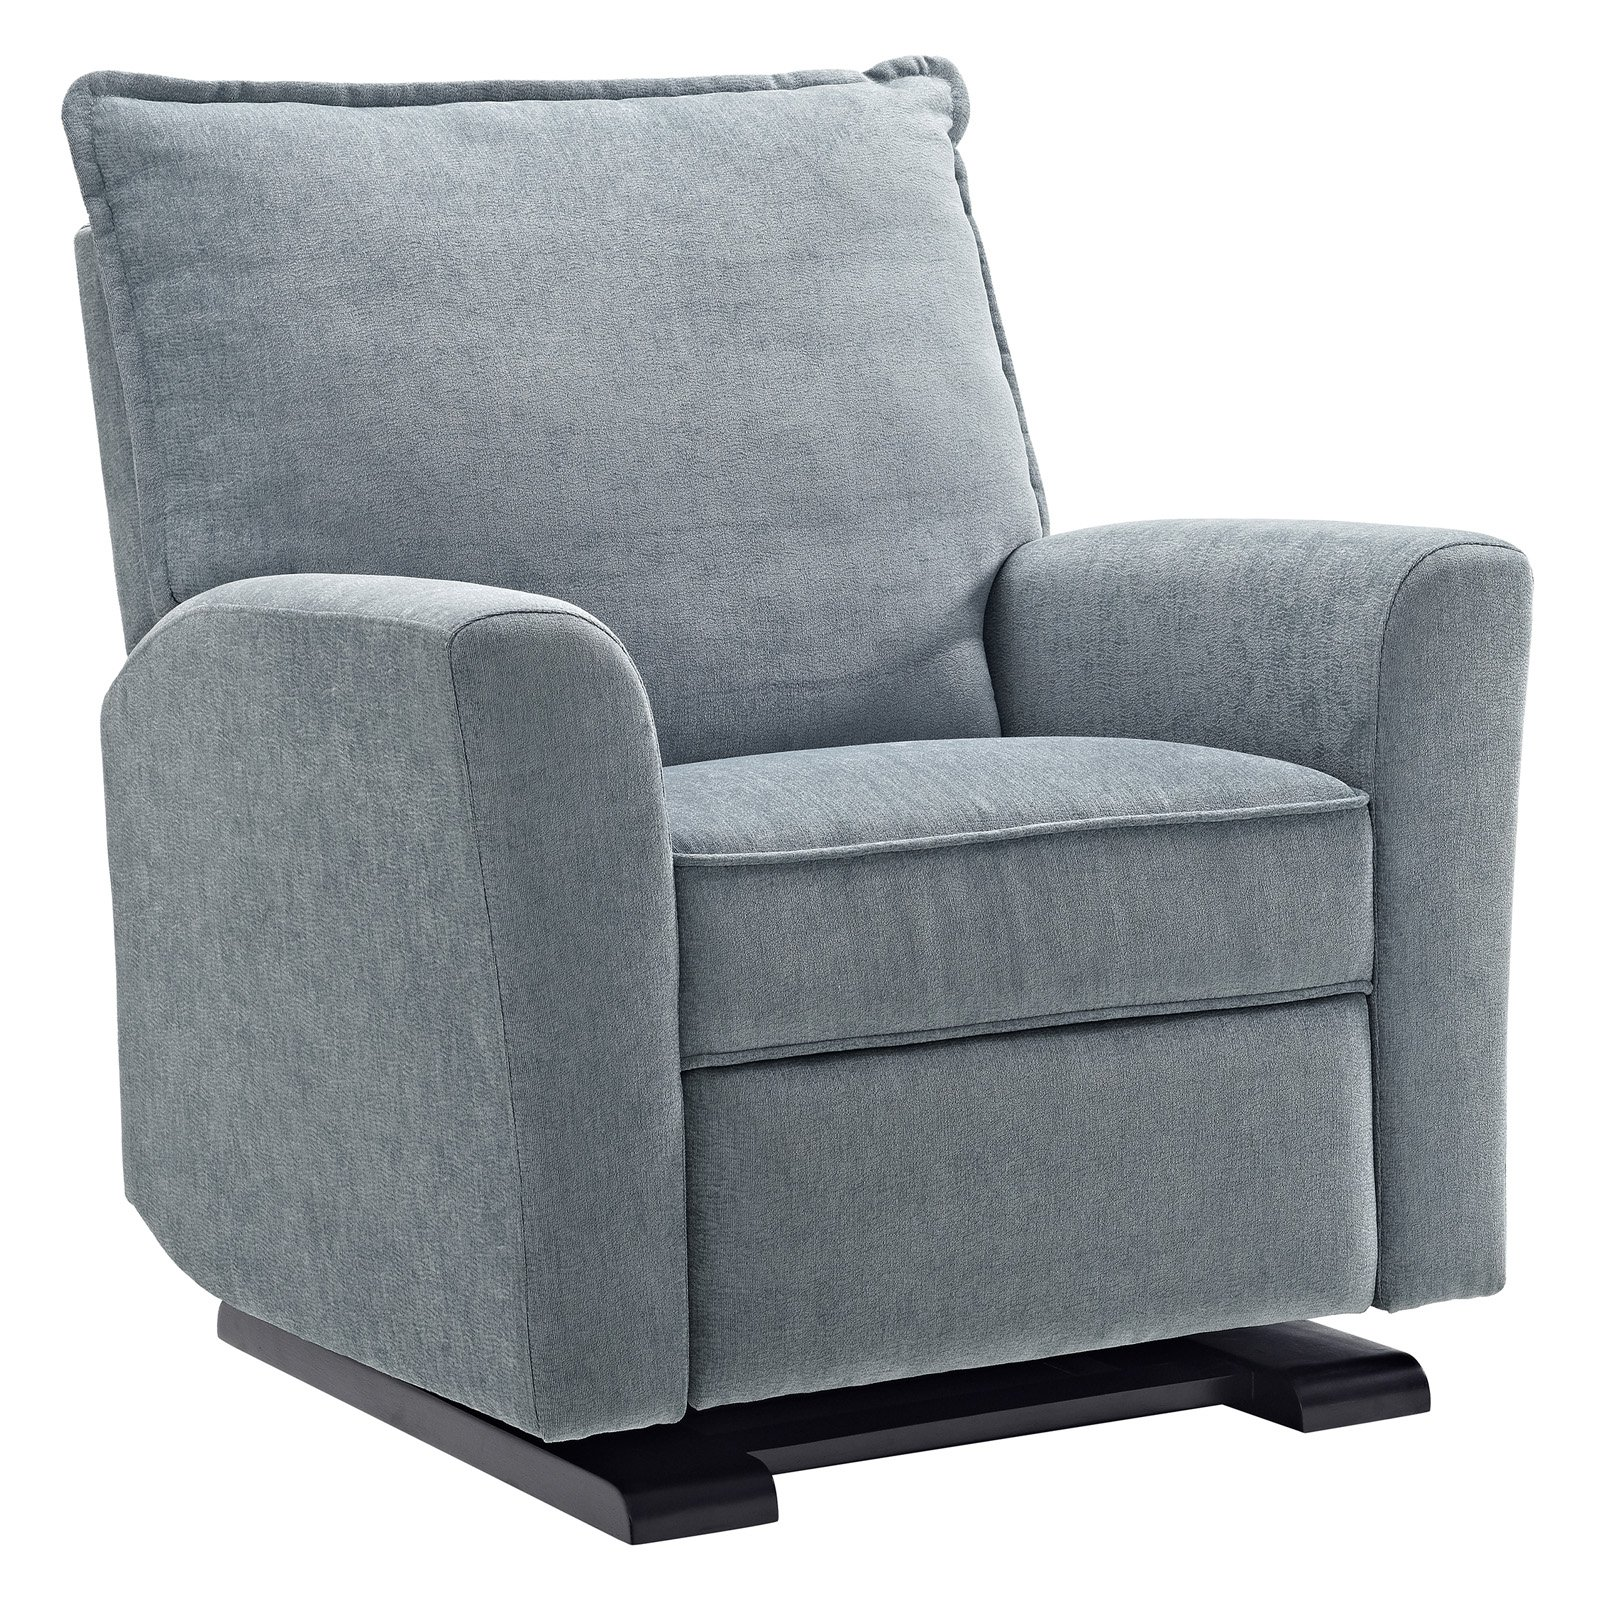 Baby Relax Raleigh Gliding Recliner  sc 1 st  Walmart & Baby Relax Raleigh Gliding Recliner - Walmart.com islam-shia.org